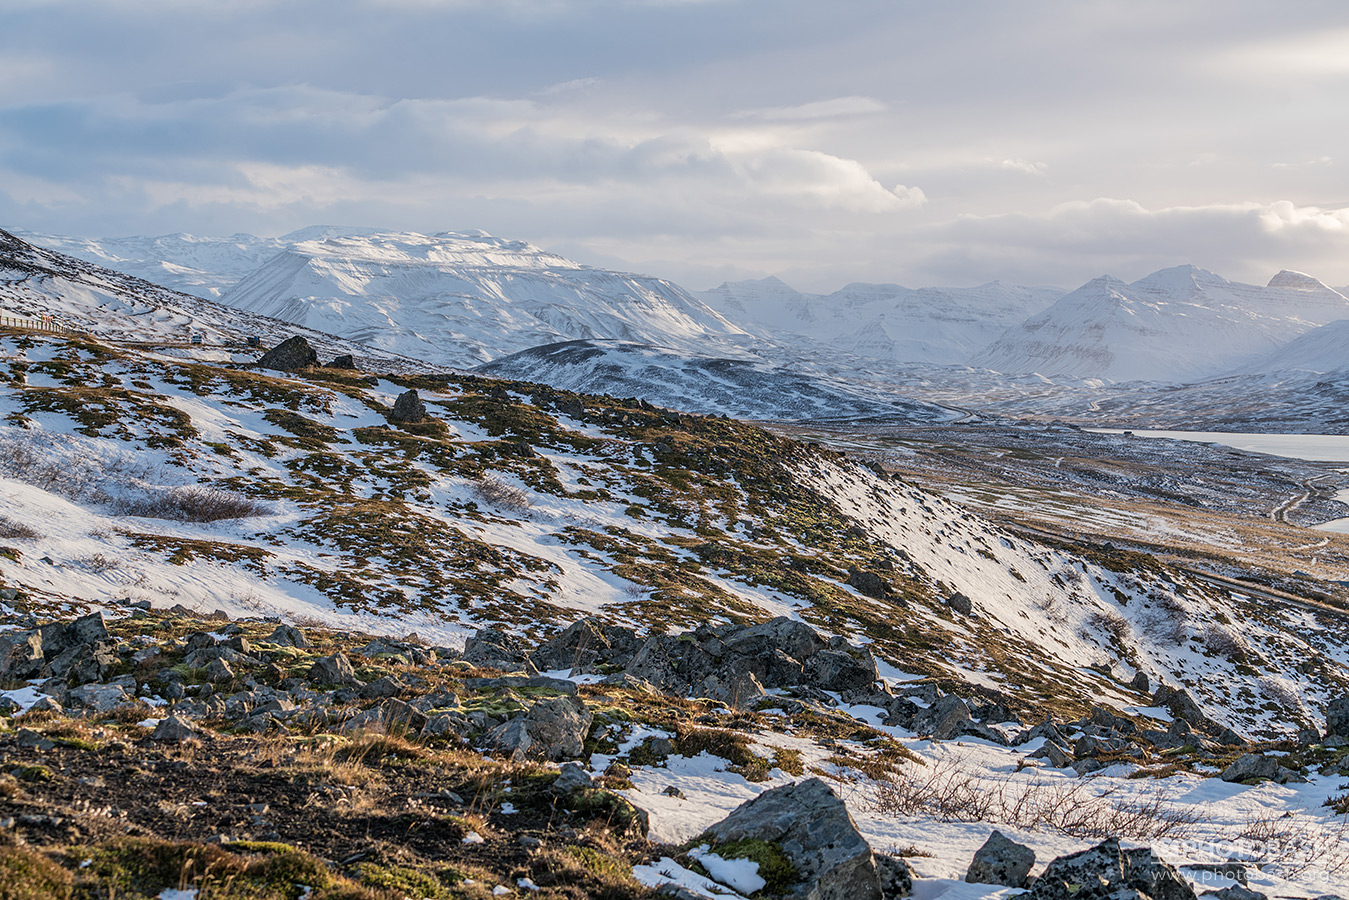 Snowy-Landscapes-Iceland-Mountains.jpg